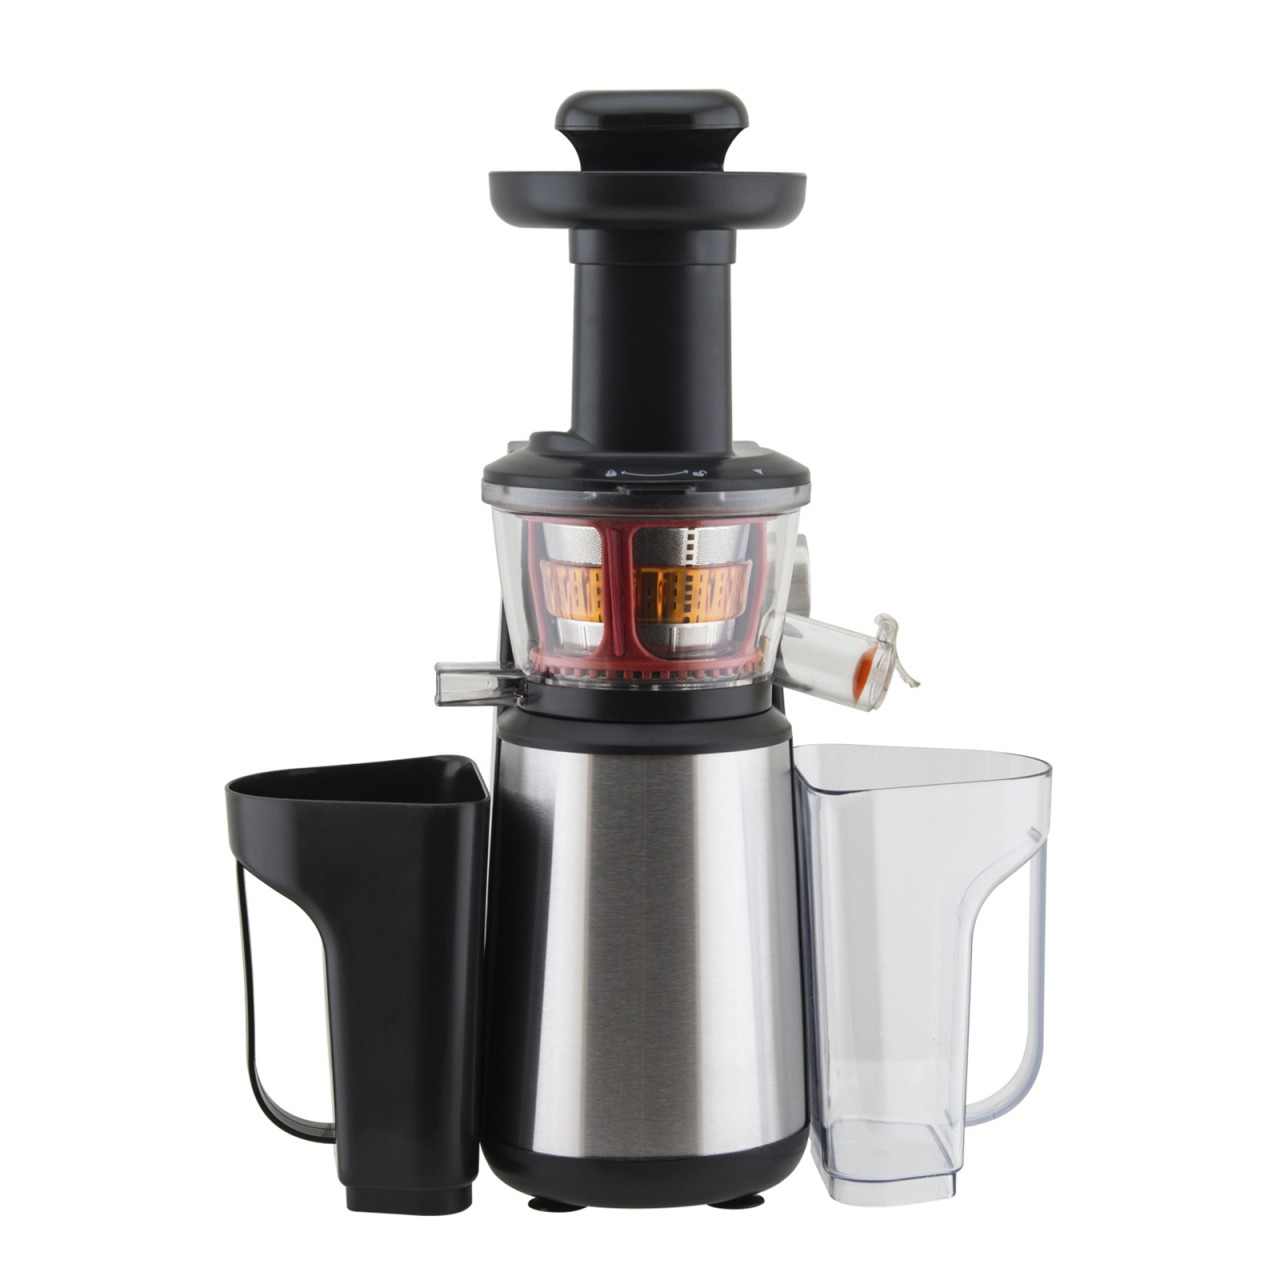 Slowjuicer 400 Watt : Power Juice extractor Slow Juicer Stainless steel 400 Watt H.koenig GSX12 eBay